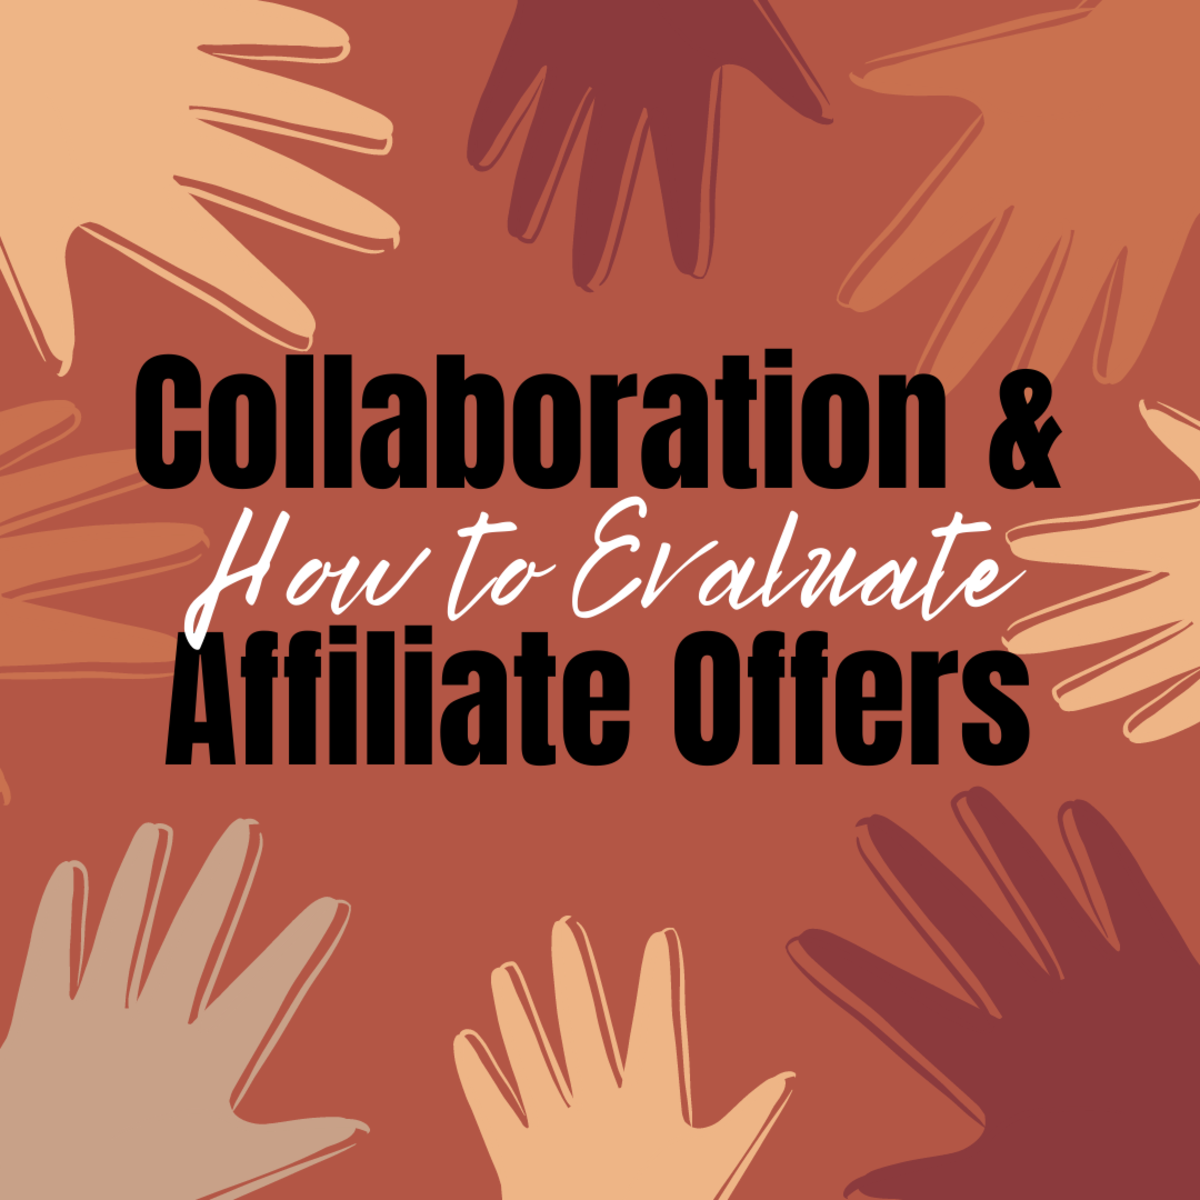 Not all collaboration offers are created equal. Learn how to evaluate which ones are right for you.